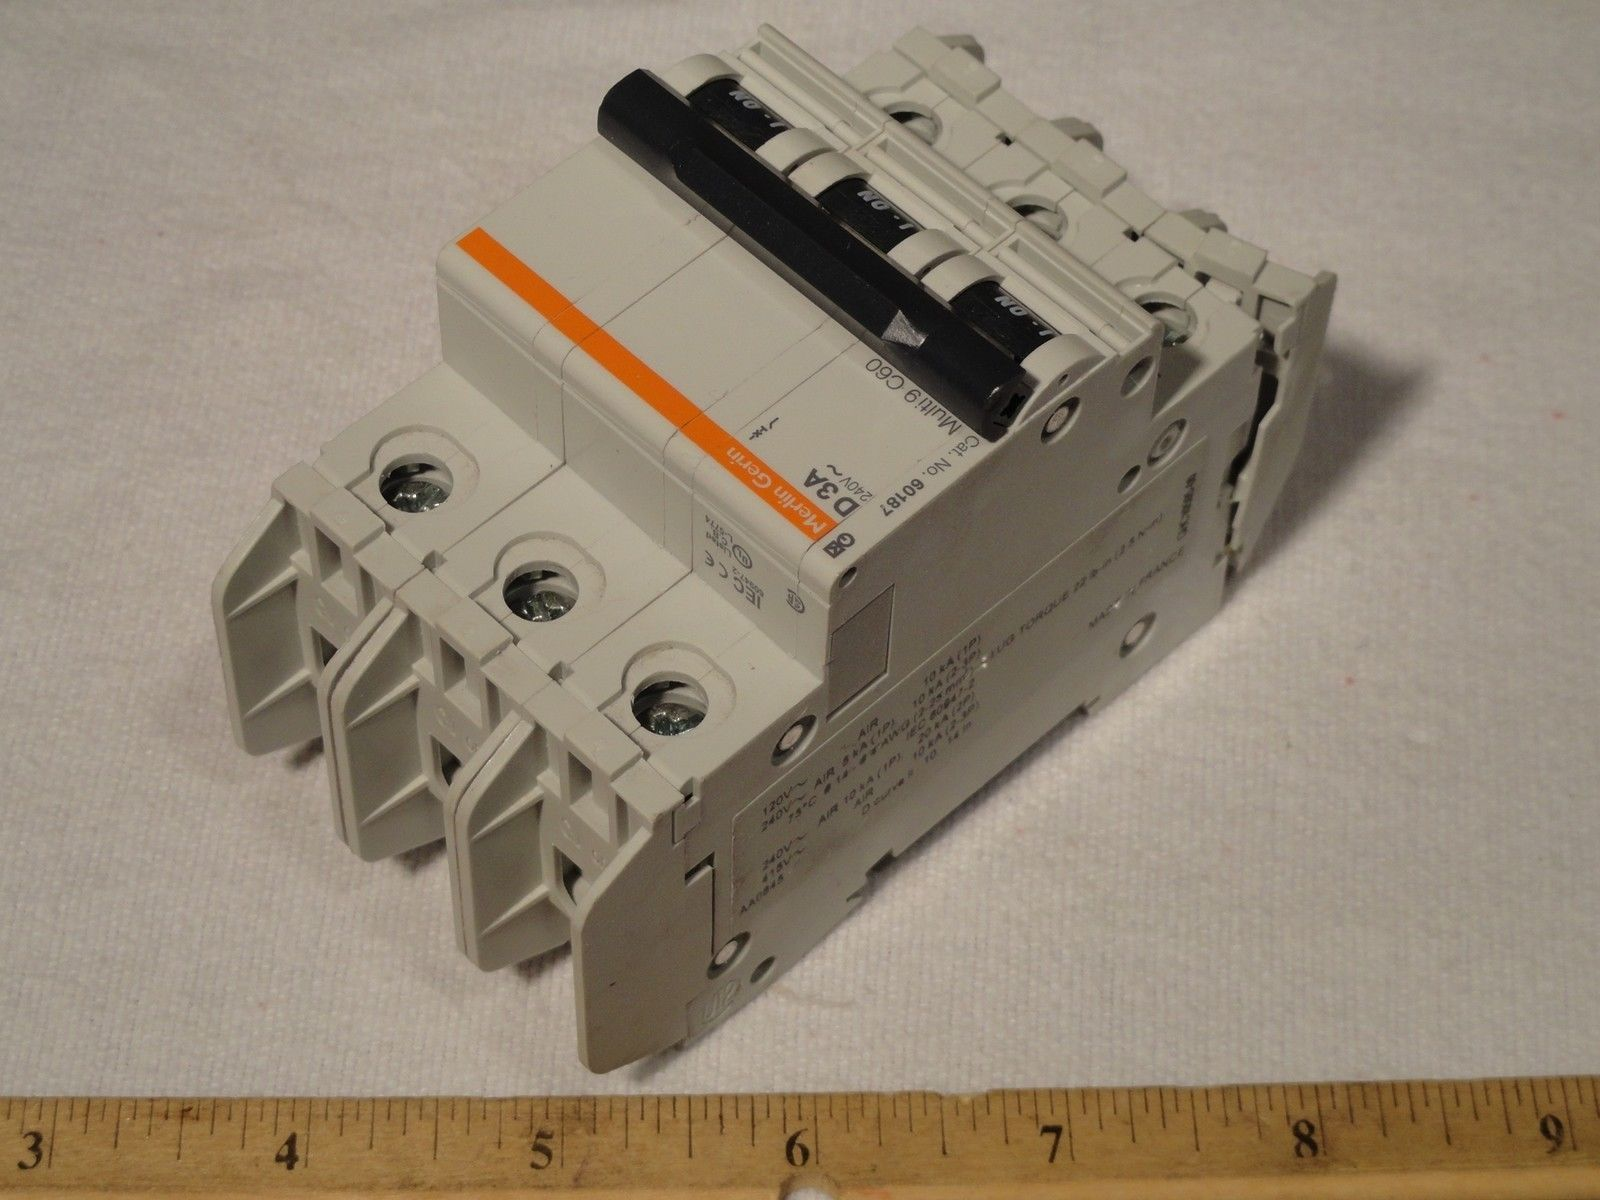 Merlin Gerin 60187 D3a Circuit Breaker 3p And 50 Similar Items Details About Siemens 5sx21 C5 230 400v 5 Amp Pole 3a 120 240v D